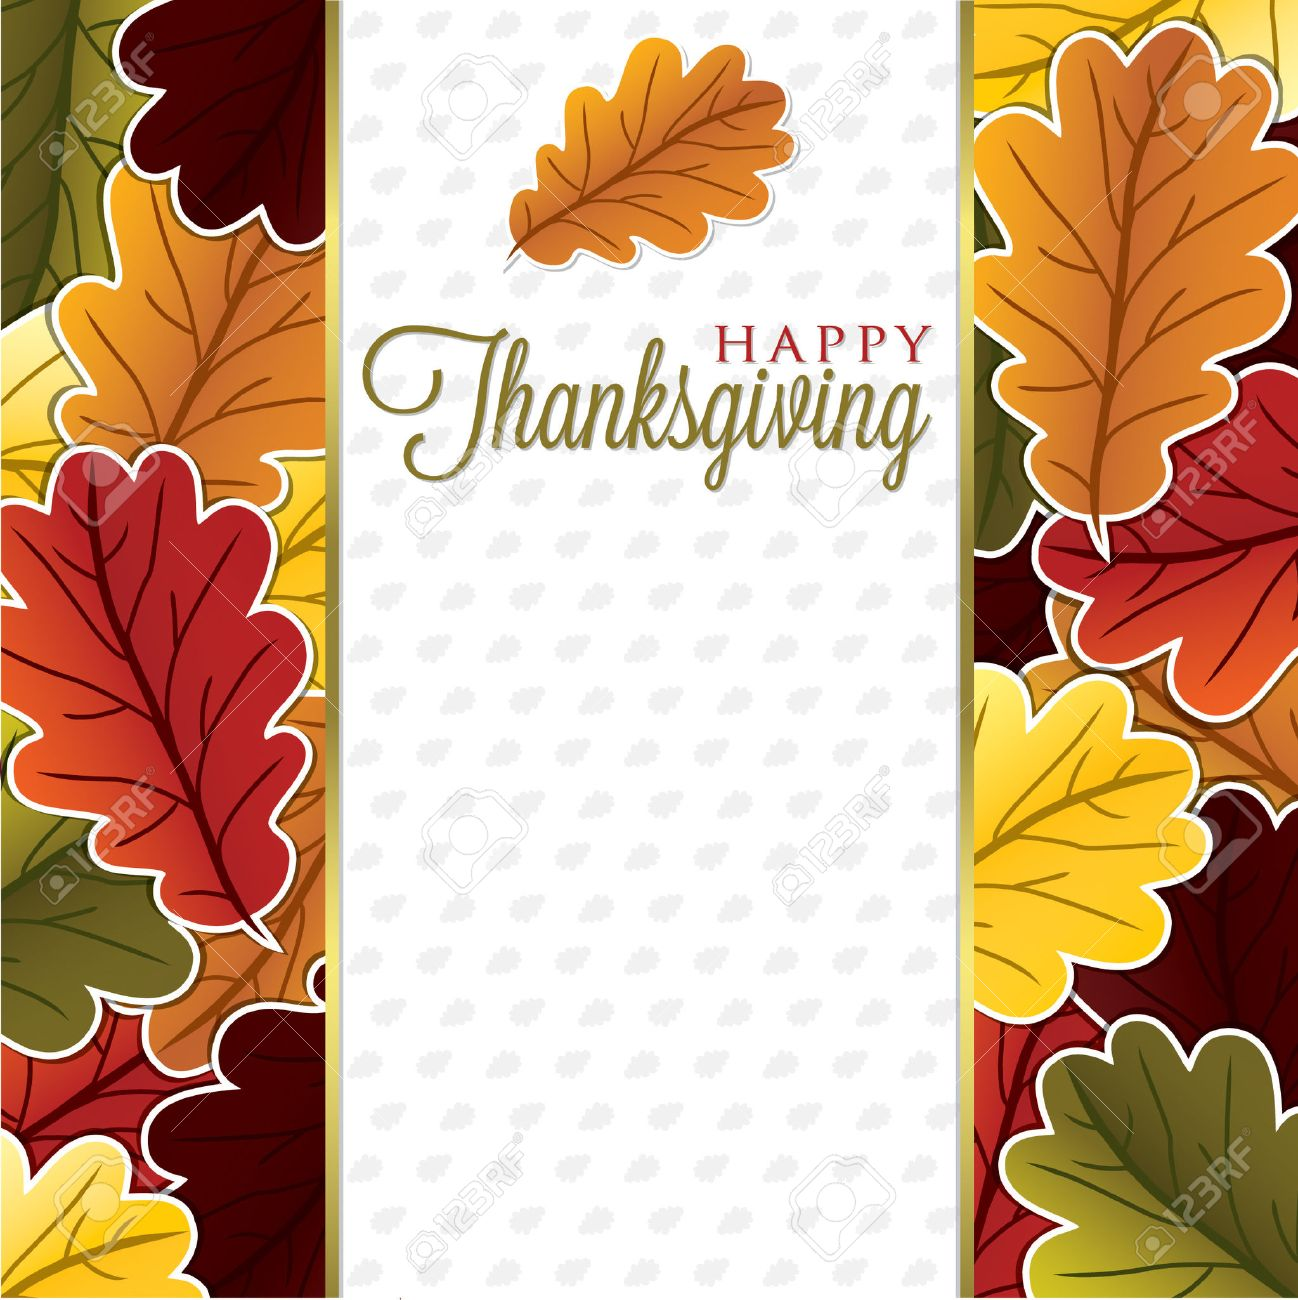 Leaf Thanksgiving card in vector format Stock Vector - 23161189